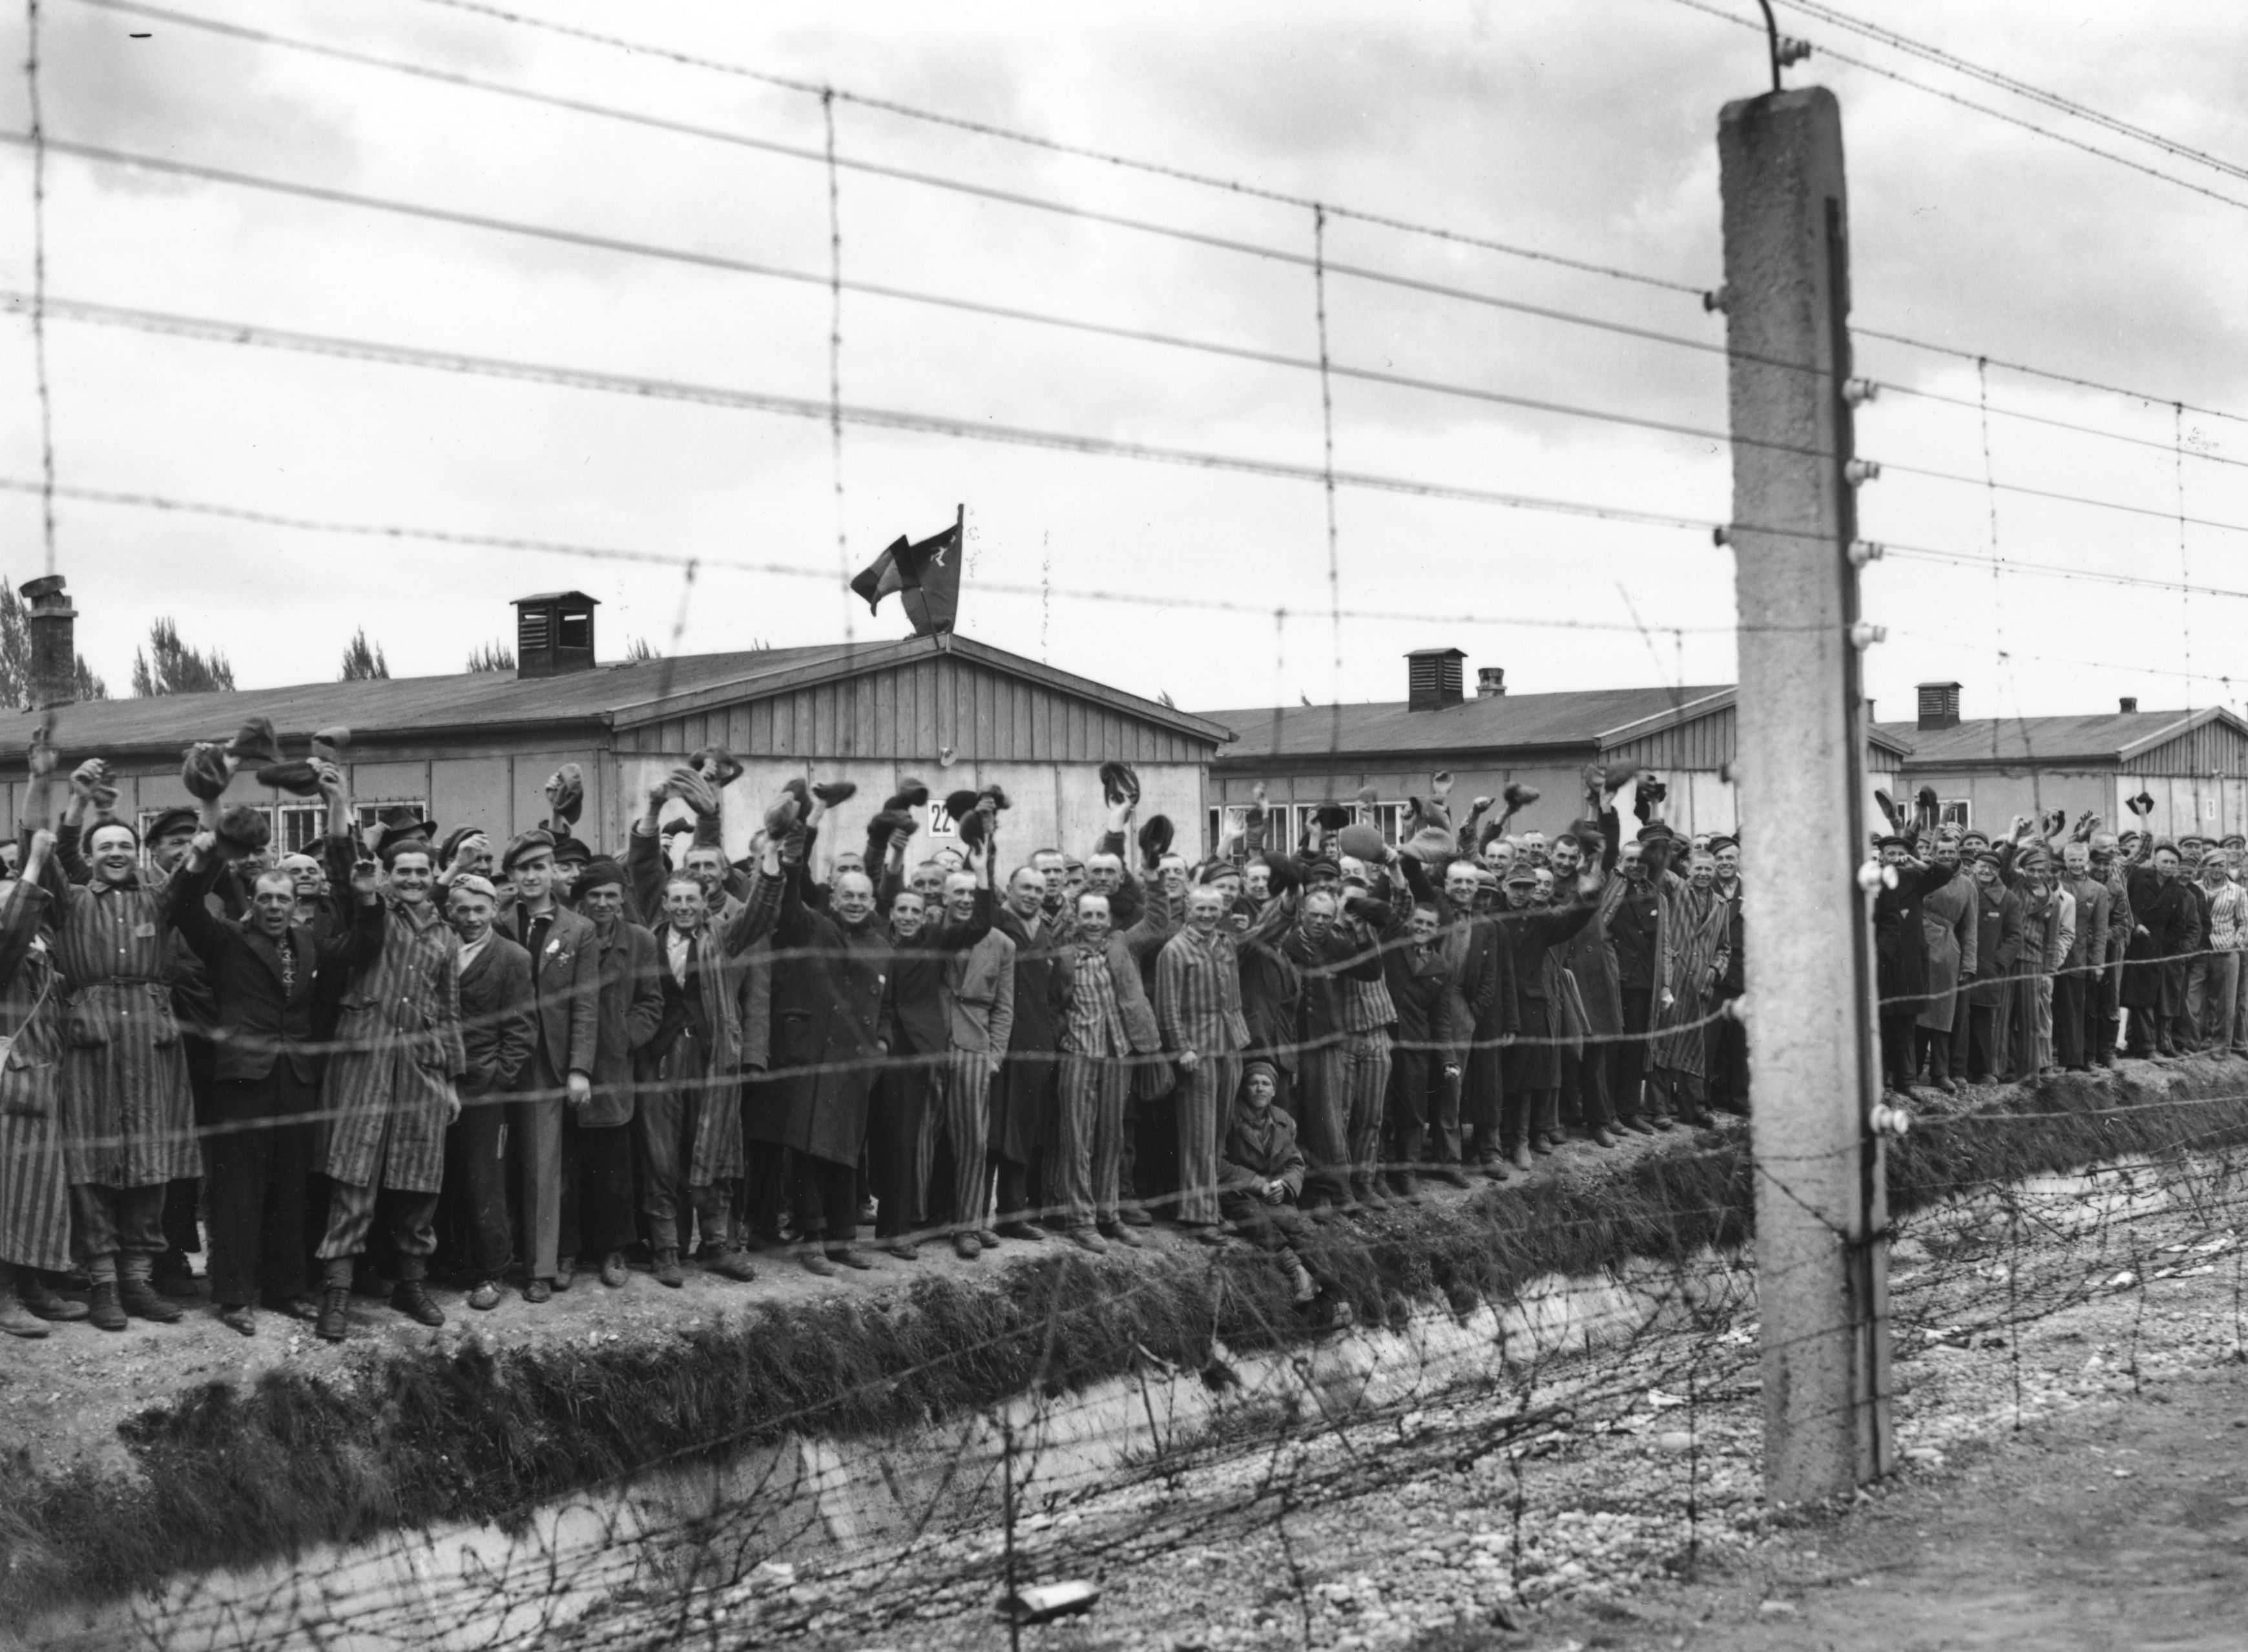 Today in History April 29: Dachau concentration camp liberated with help of US soldiers thumbnail